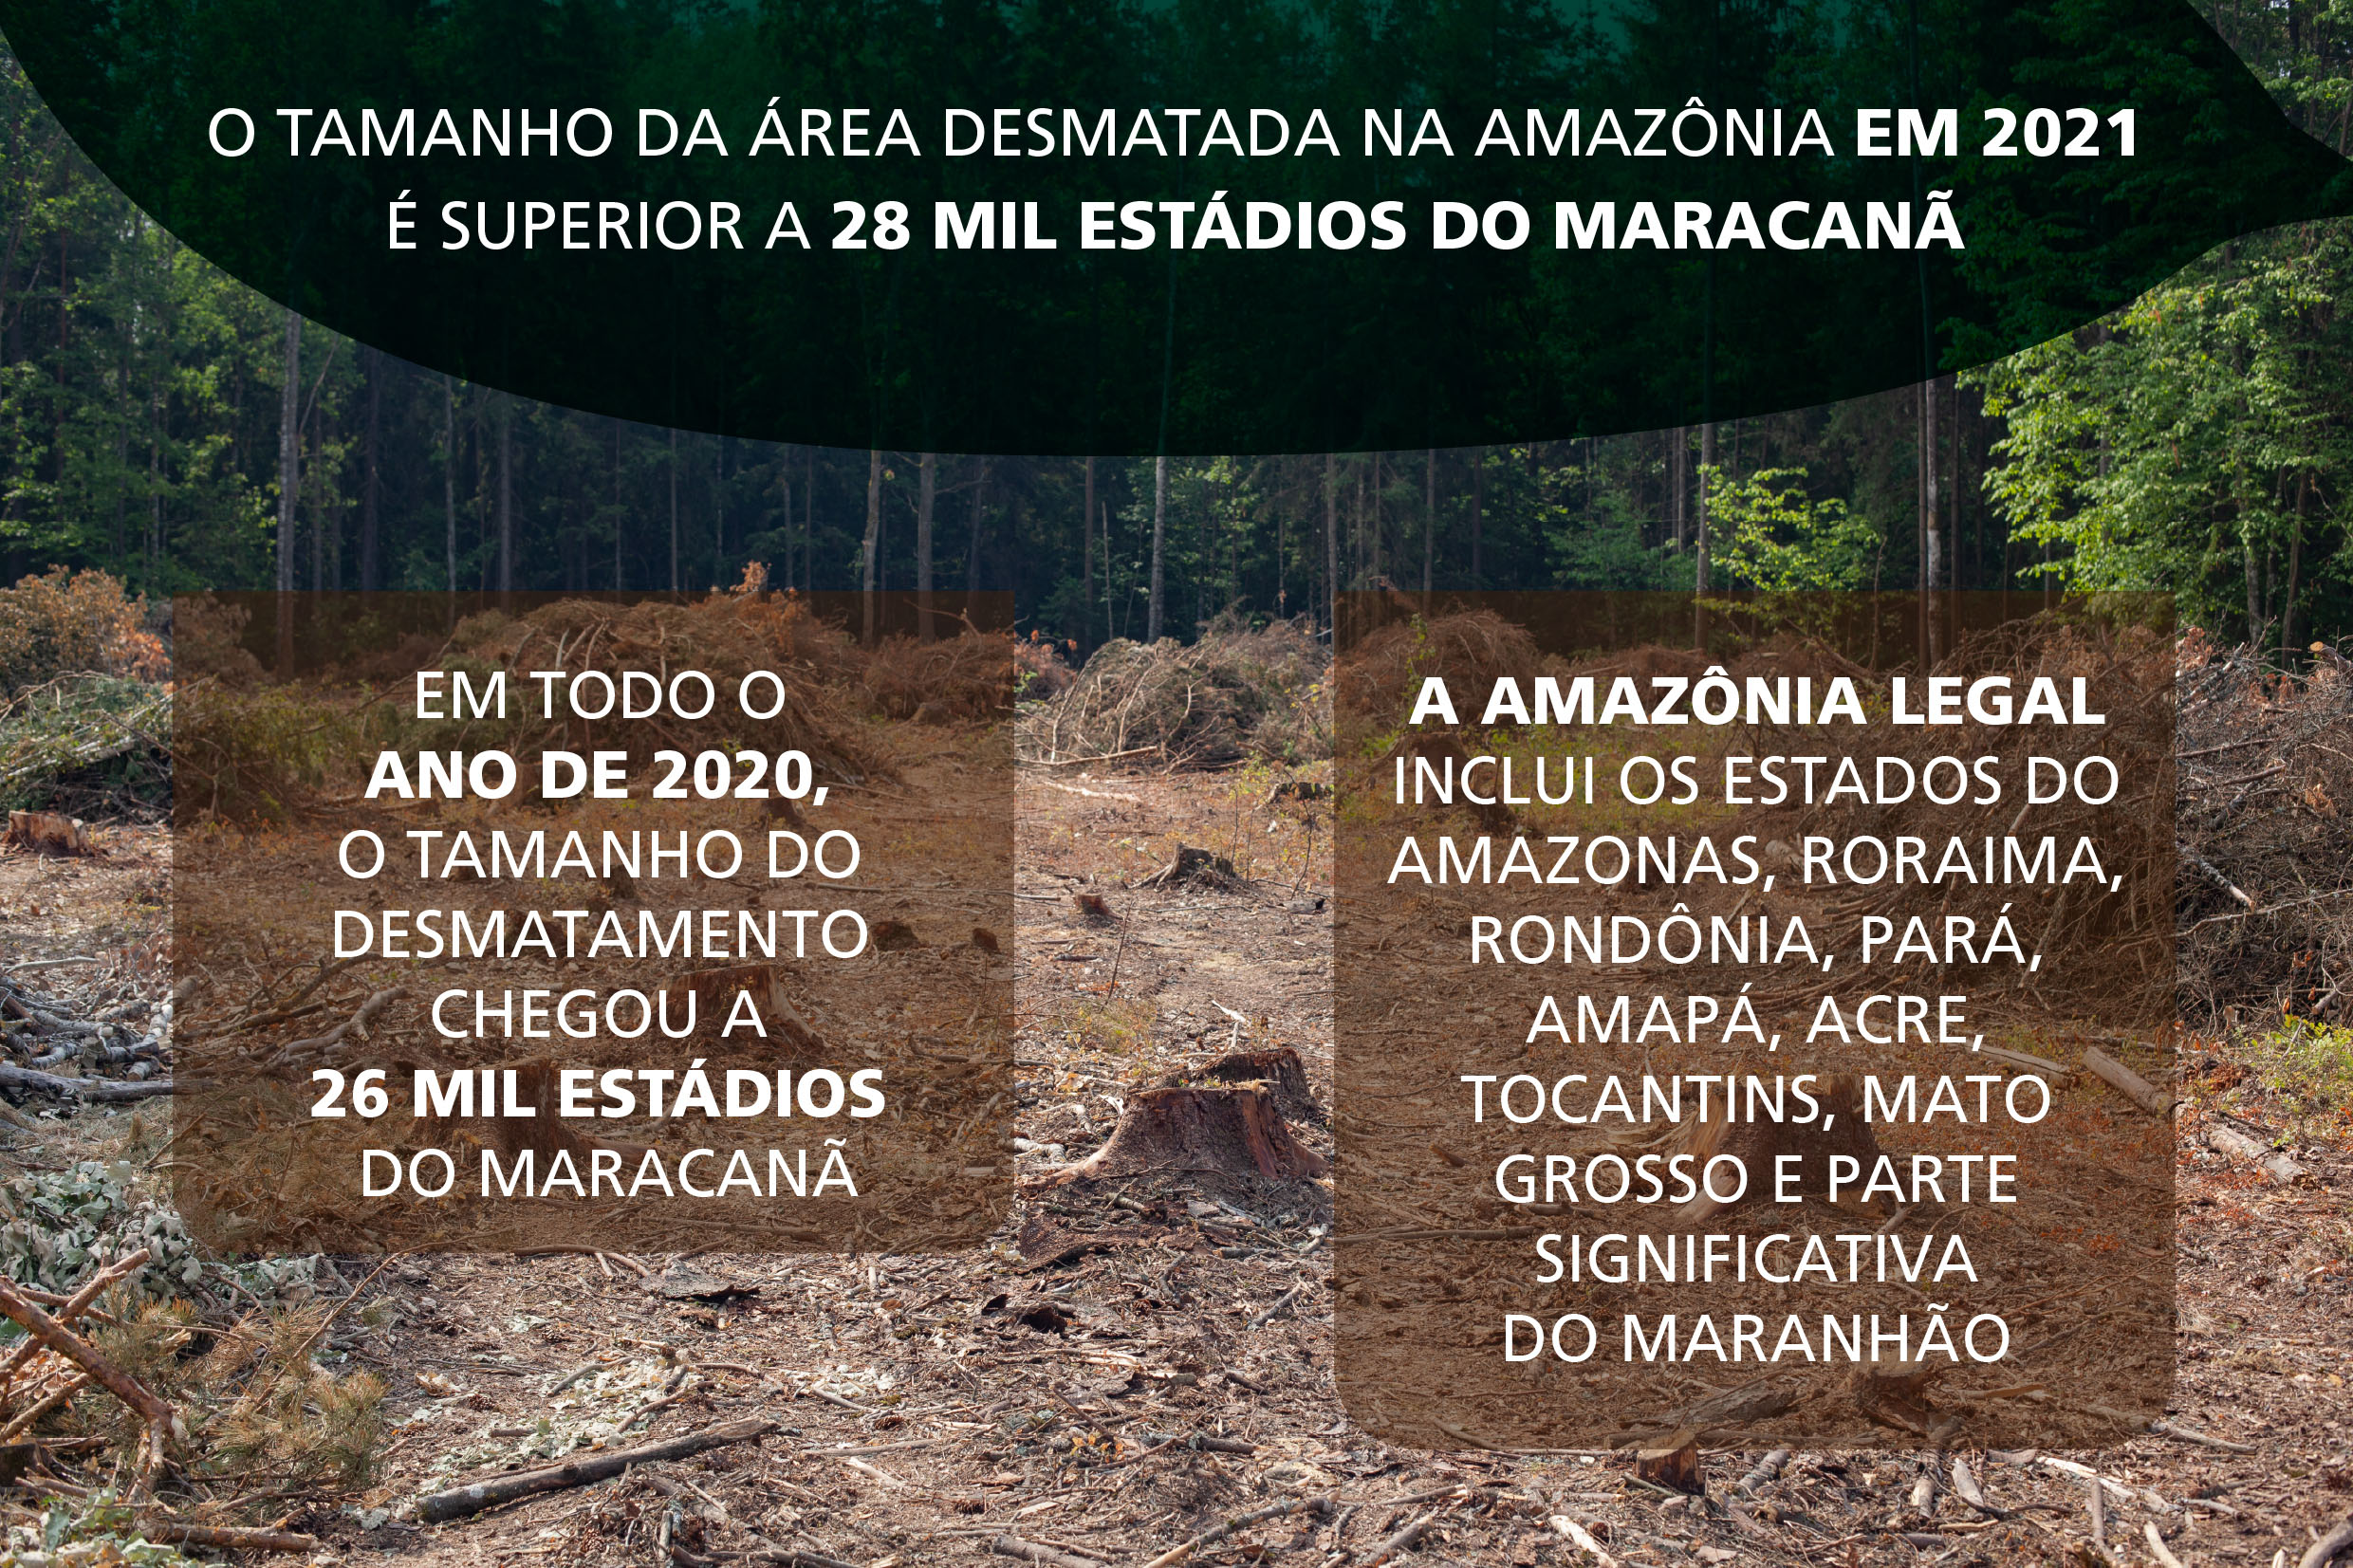 Infográfico<a style='float:right' href='https://www3.al.sp.gov.br/repositorio/noticia/N-09-2021/fg273401.jpg' target=_blank><img src='/_img/material-file-download-white.png' width='14px' alt='Clique para baixar a imagem'></a>